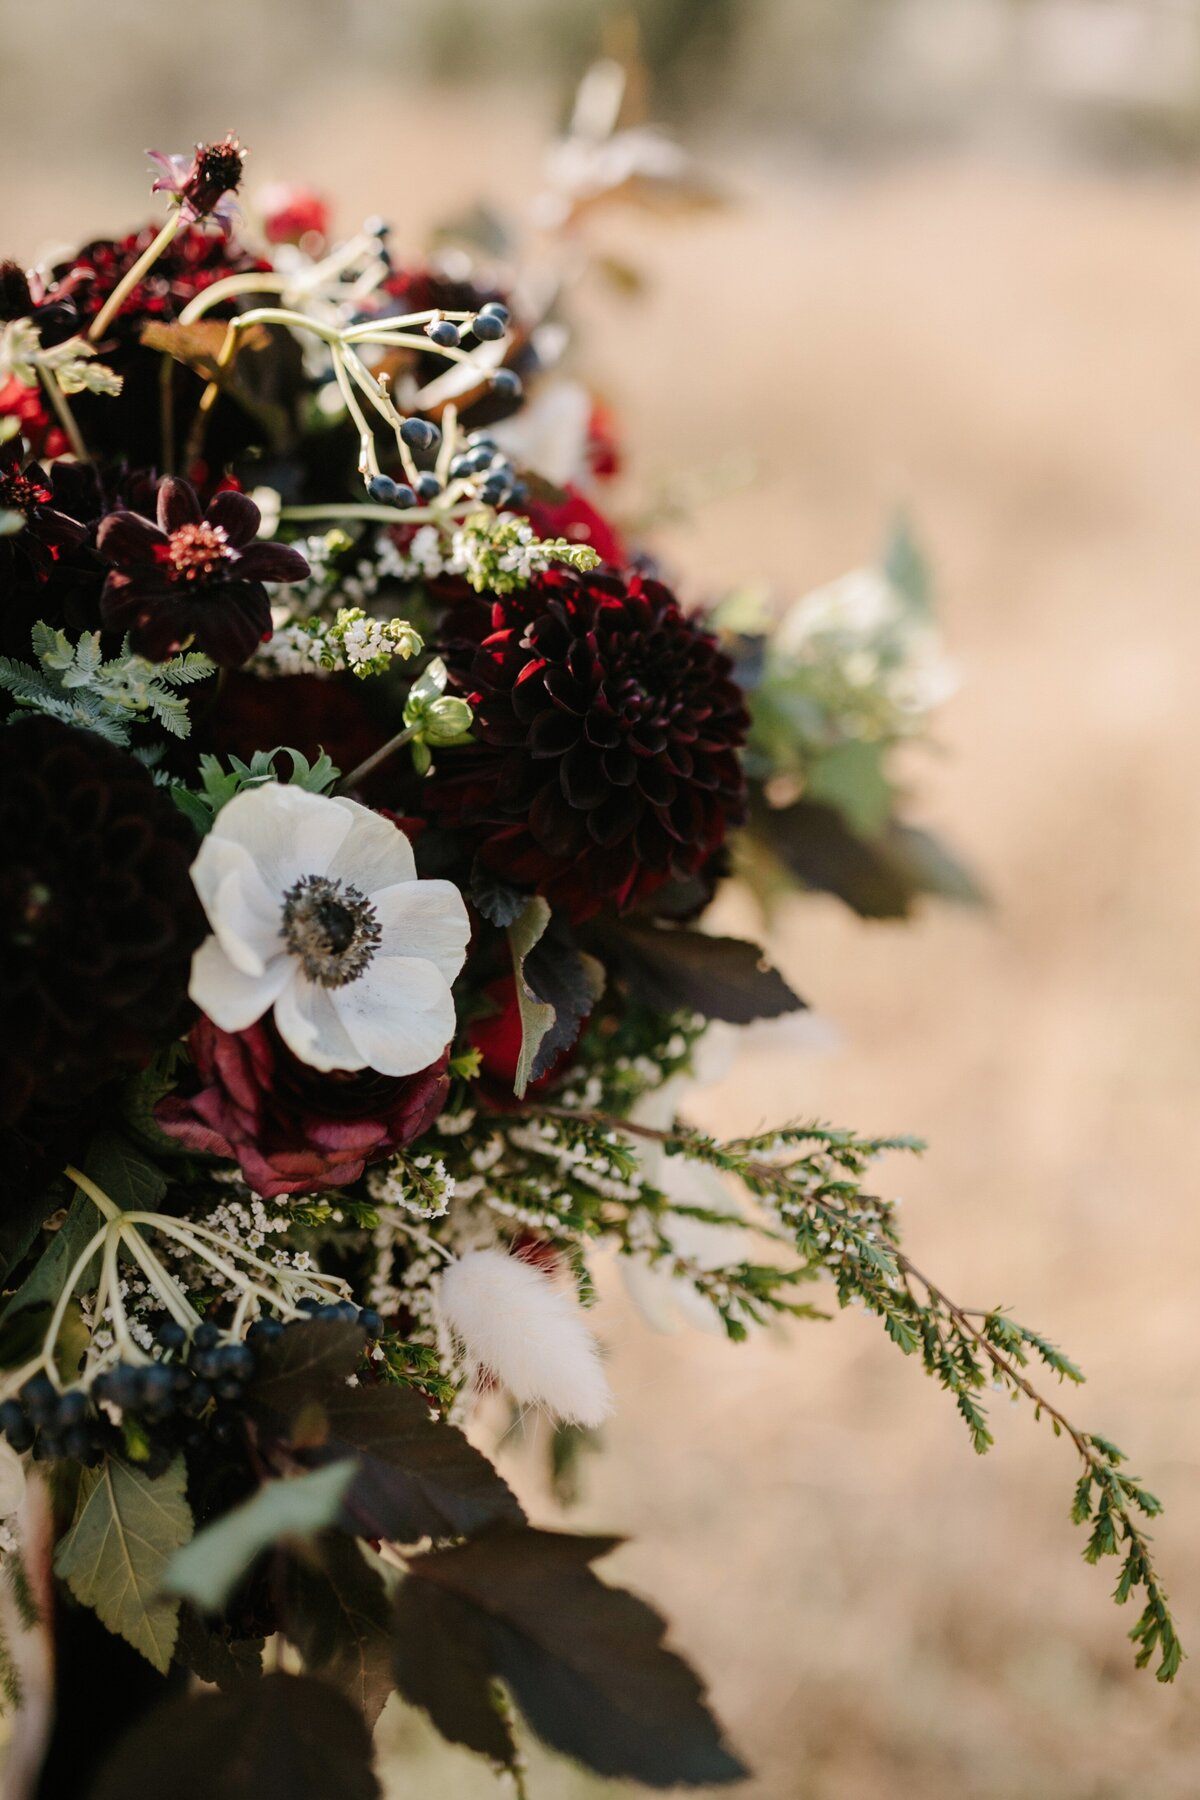 Game of Thrones wedding, Lord of the Rings wedding, central oregon wedding, bend oregon florist